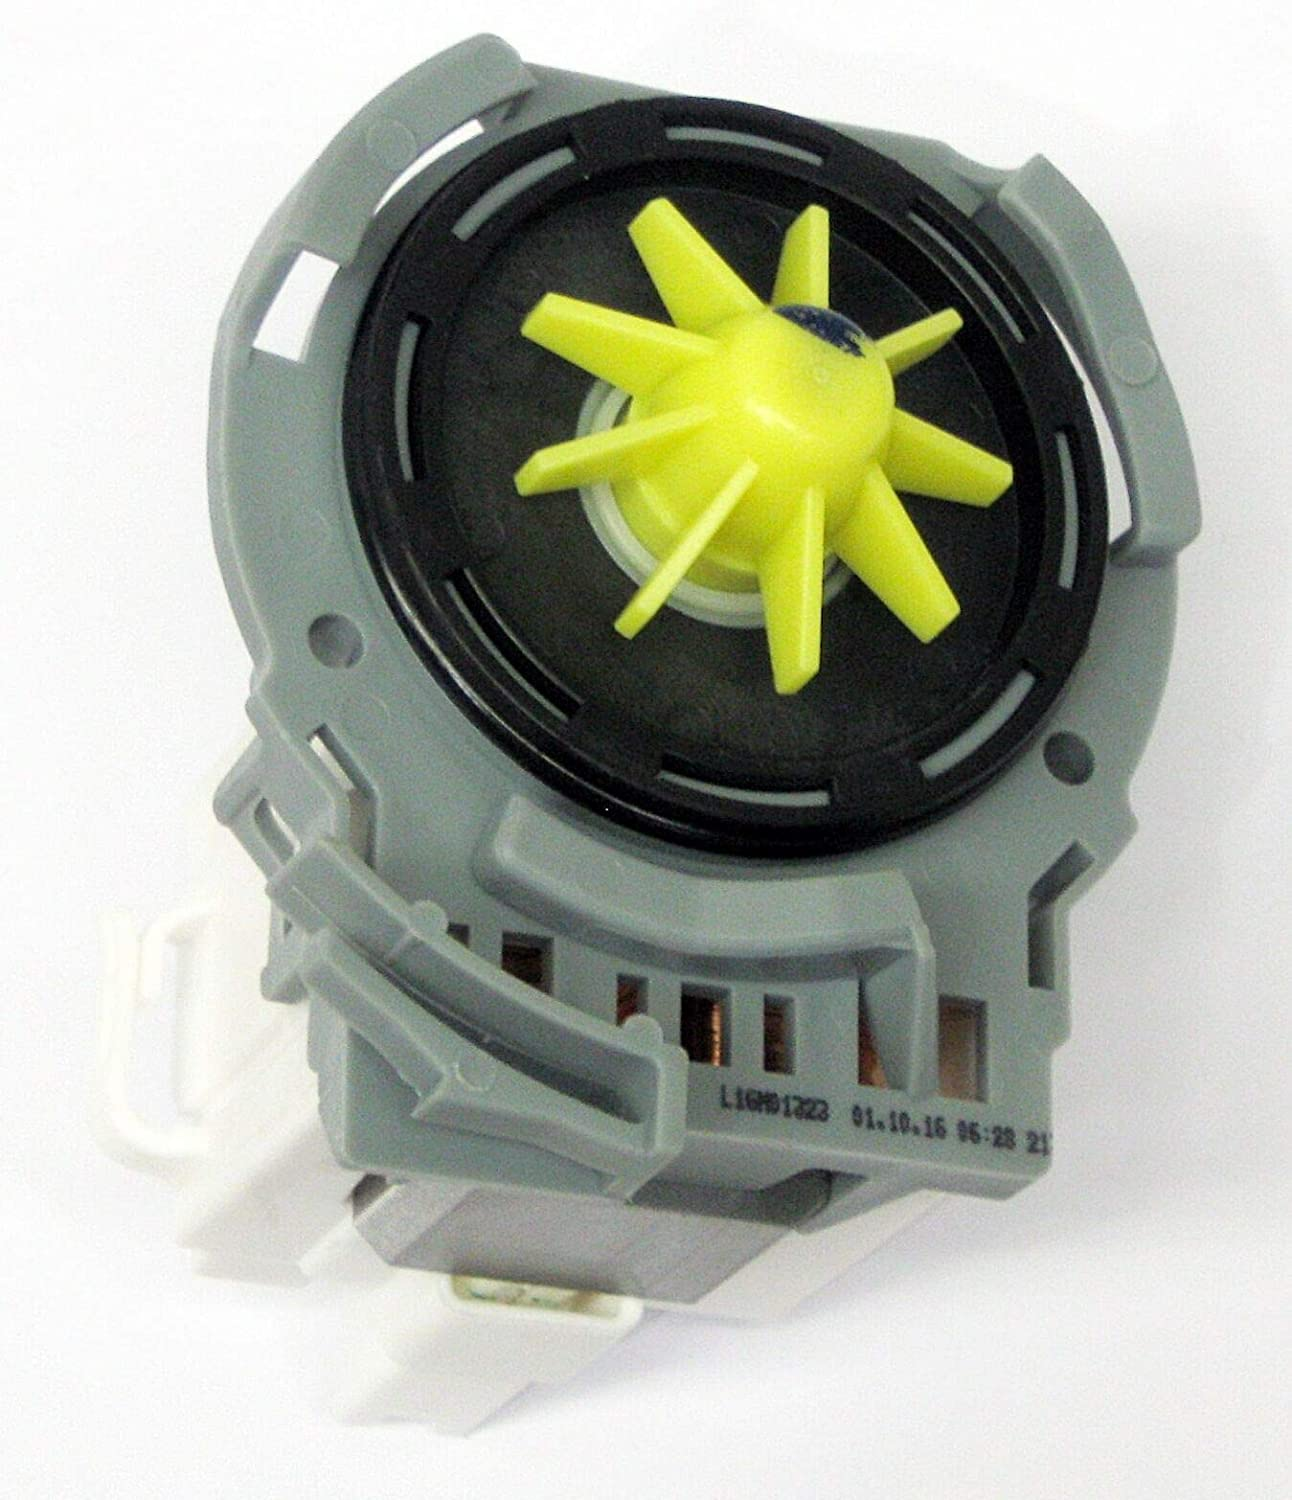 WPW10348269 for Whirlpool Kenmore Dishwasher Drain Pump AP6020066 PS11753379 8558995, 661662 8565839 W10158351 W10084573 W10348269 PS8688439